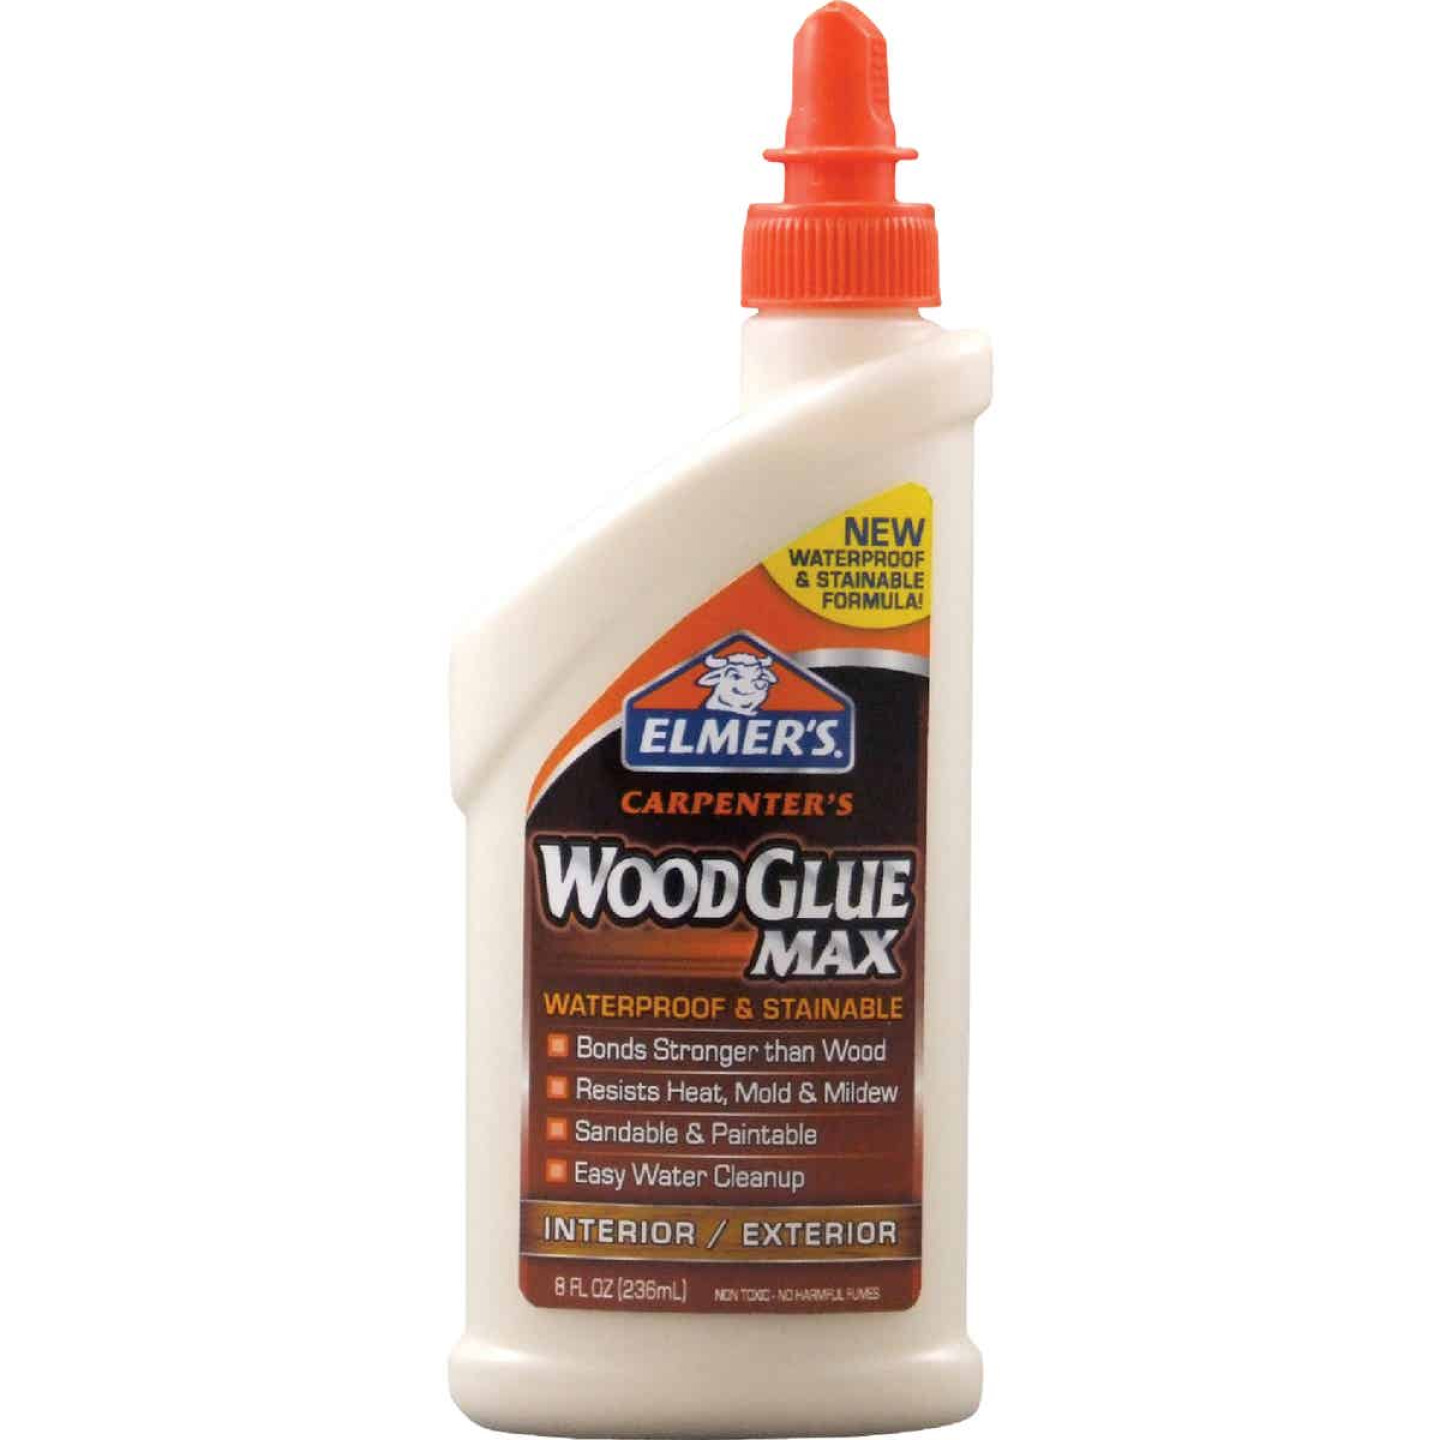 Elmer's Carpenter's 8 Oz. Wood Glue Max Image 1